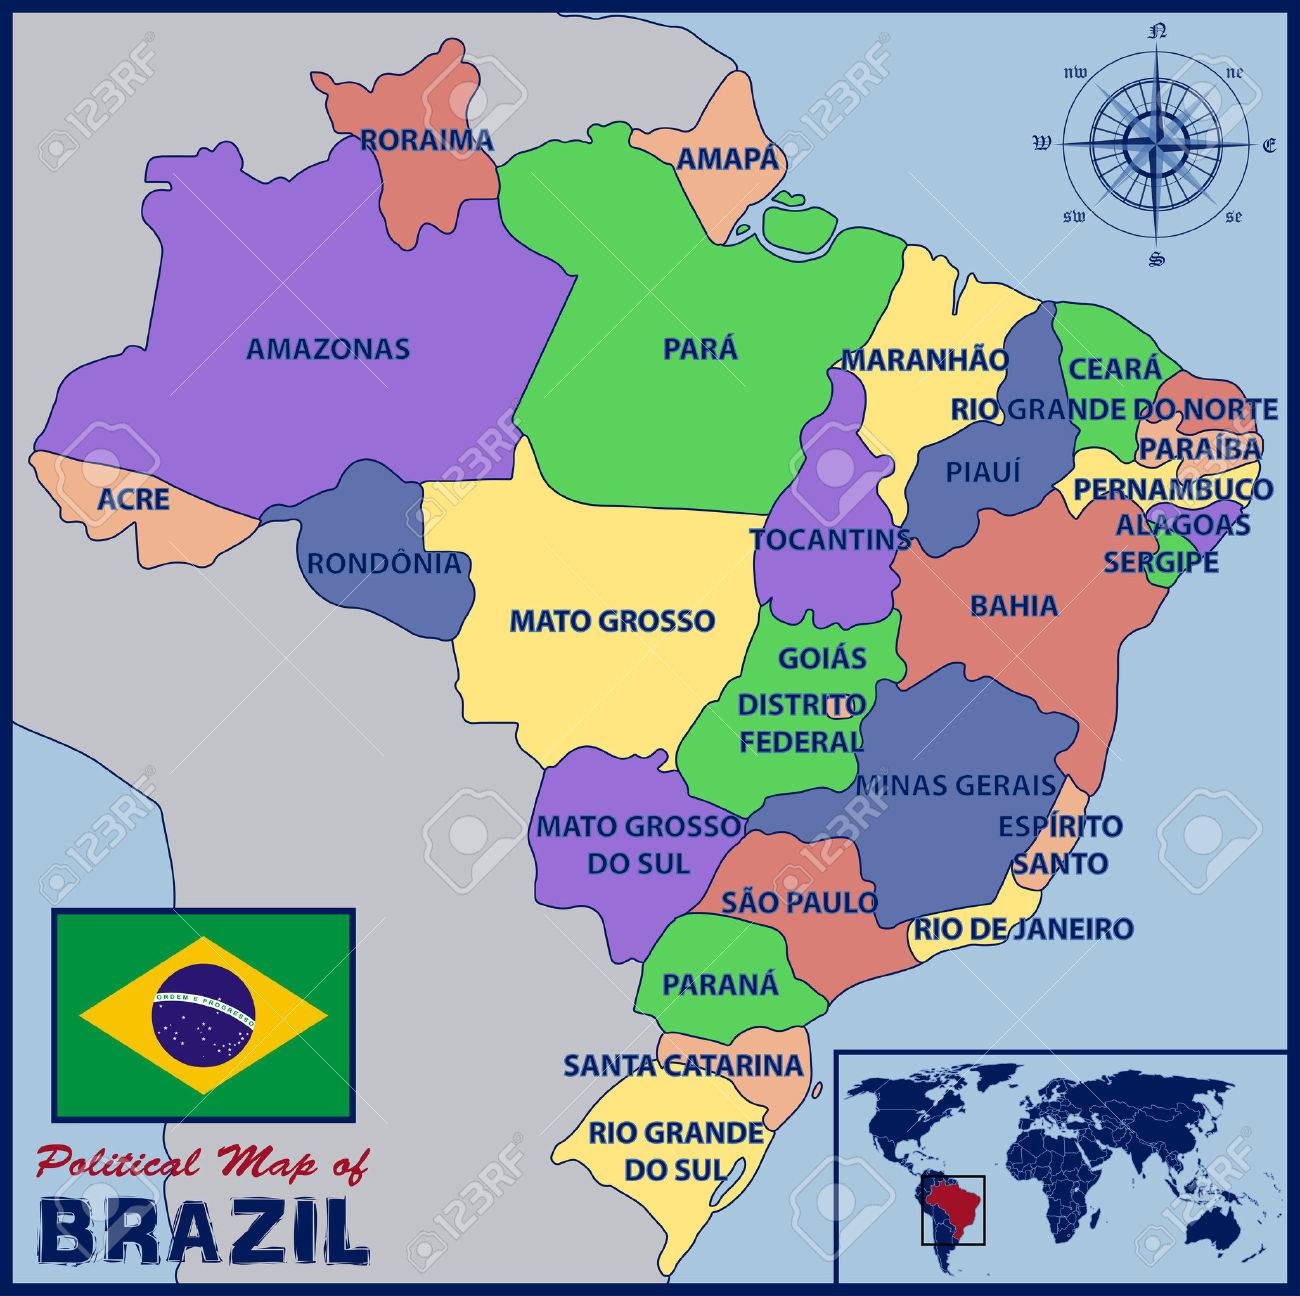 Political Map Of Brazil Royalty Free Cliparts Vectors And Stock - Political map of brazil